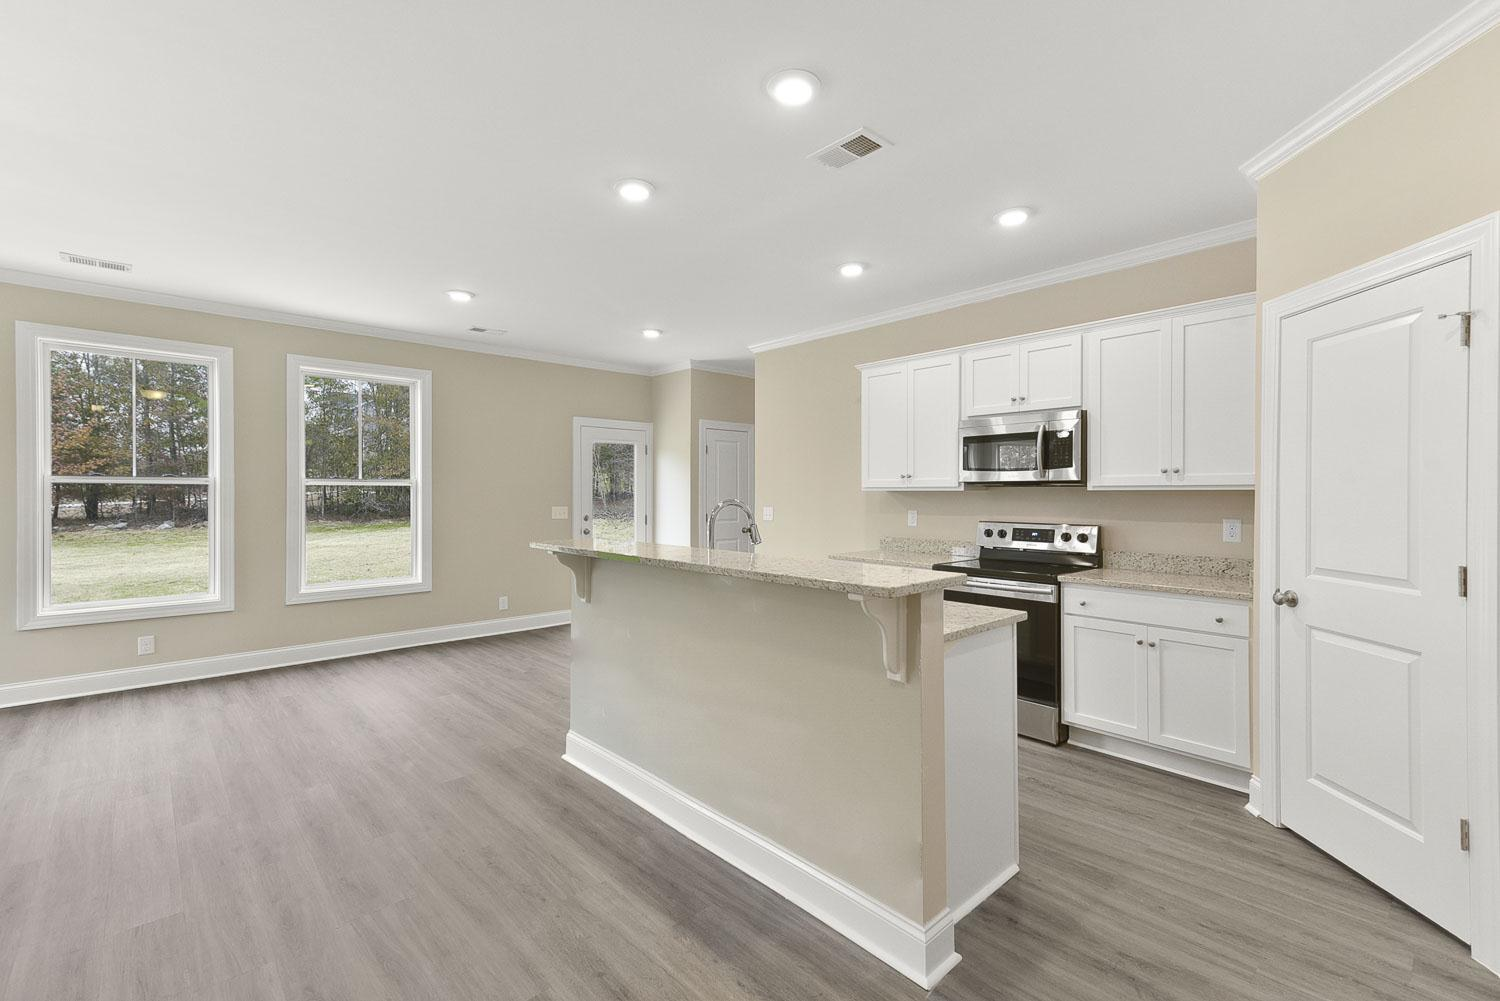 Kitchen featured in the Wildwood IV By Executive Construction Homes in Columbia, SC